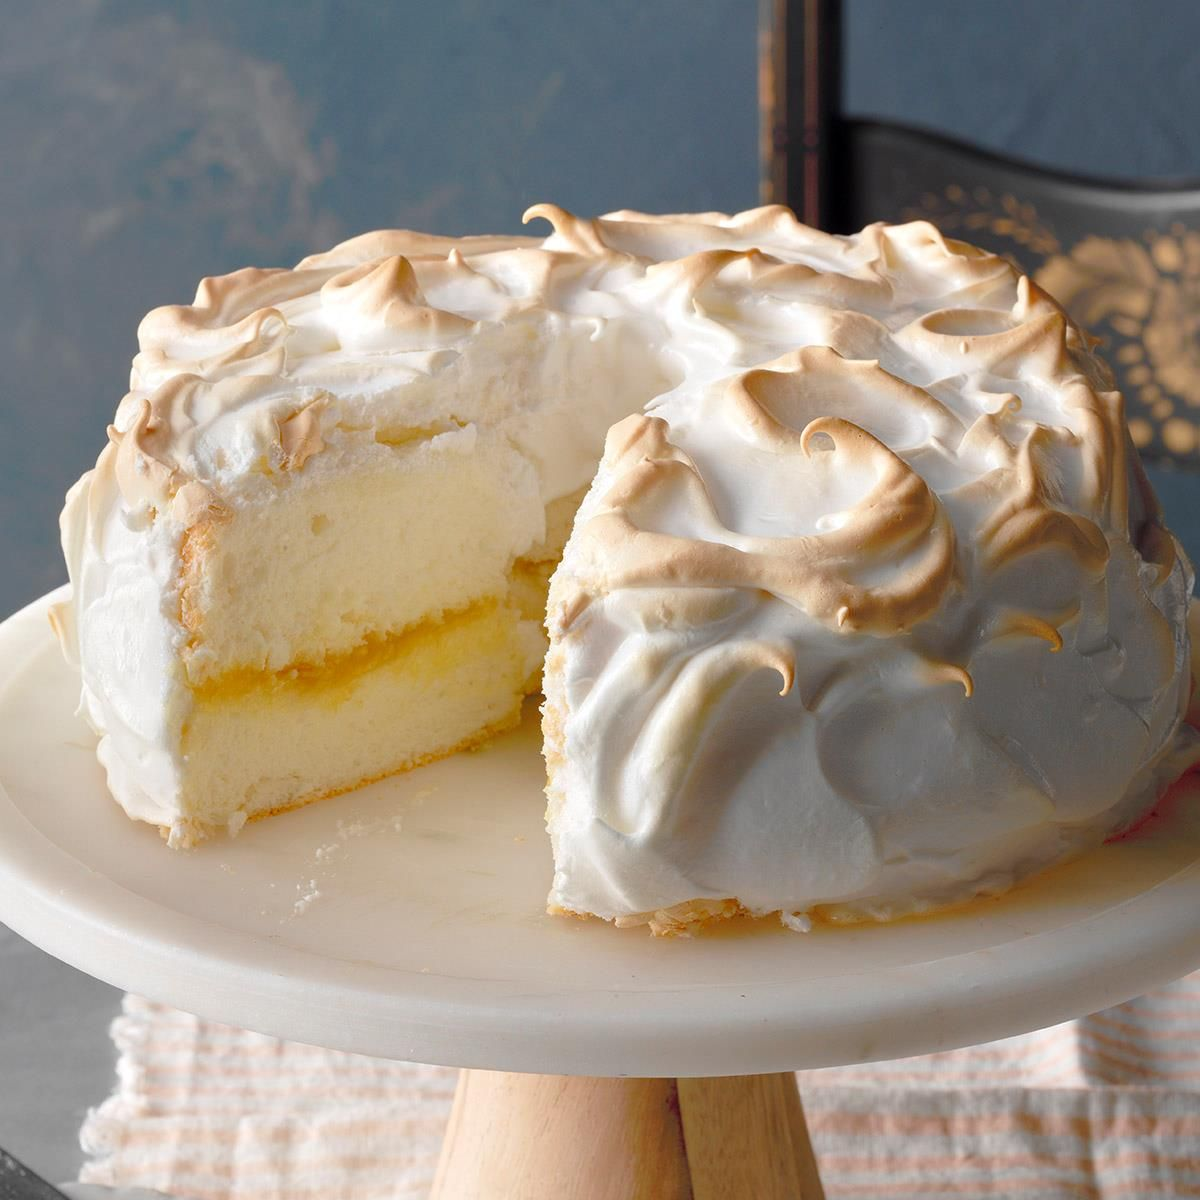 Lemon Meringue Angel Cake #lemonmeringuepie